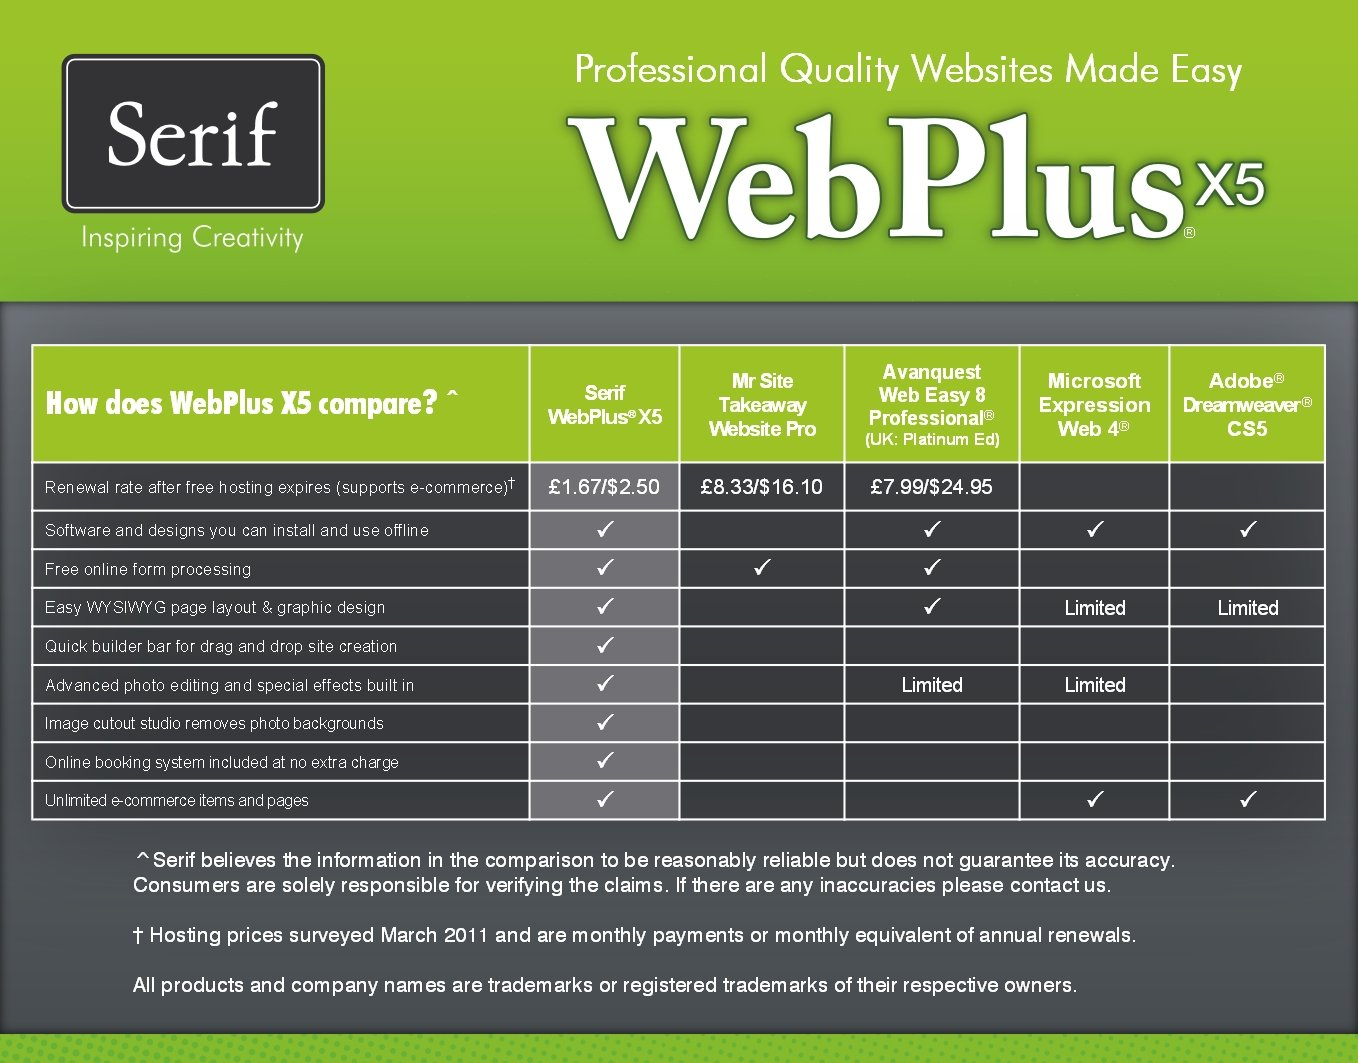 Amazon.com: Serif WebPlus X5: Software